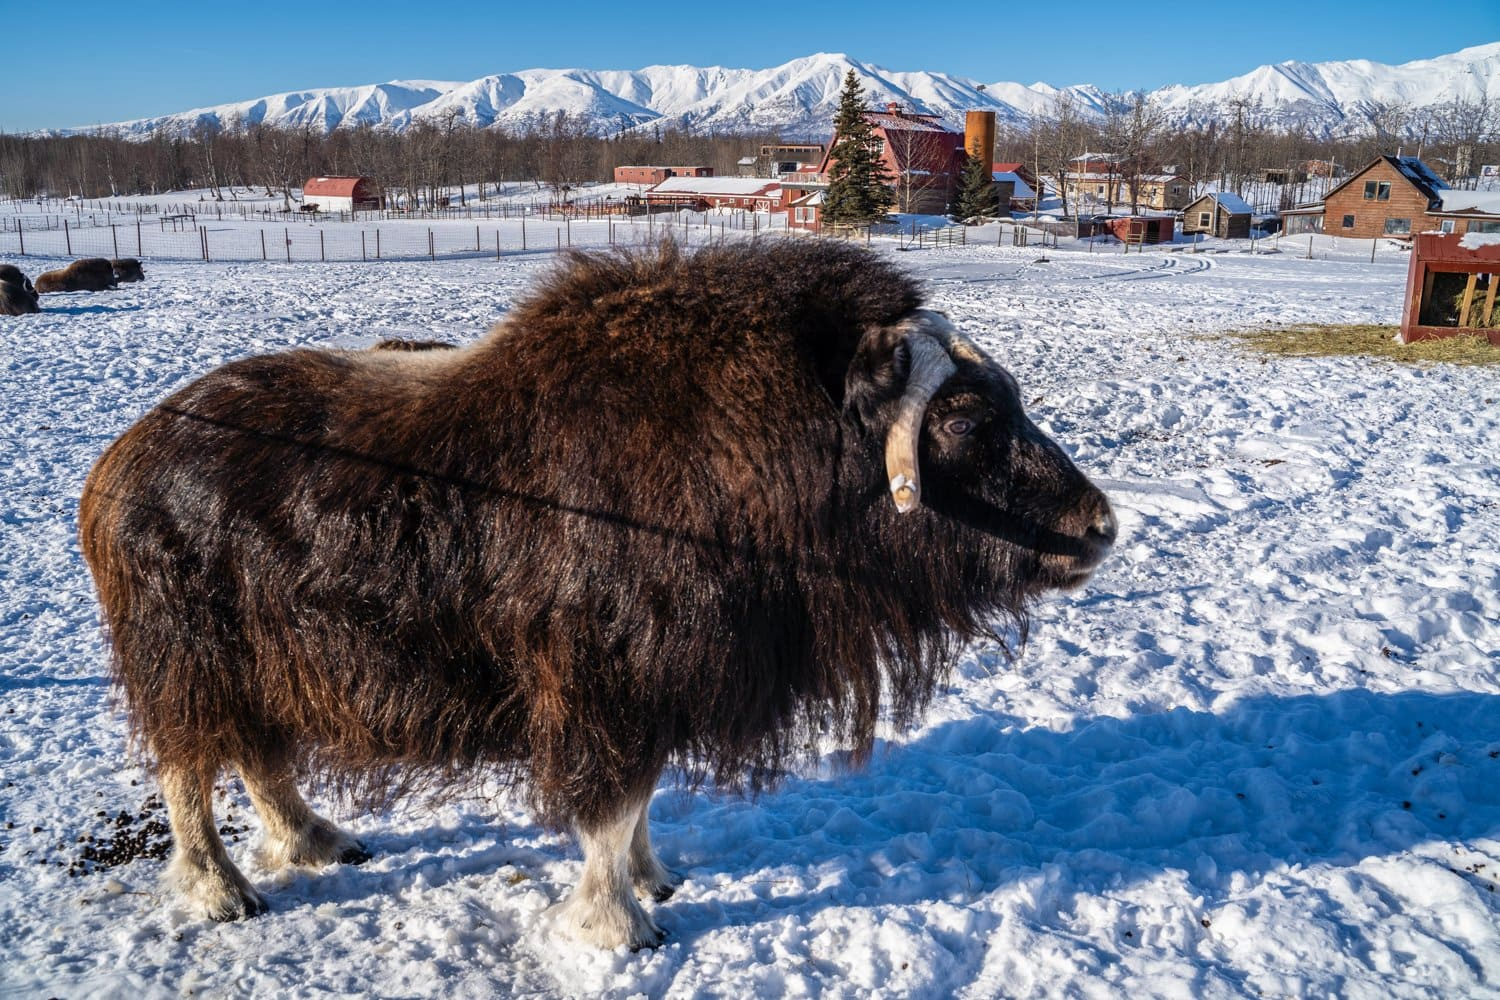 see a muskox up close